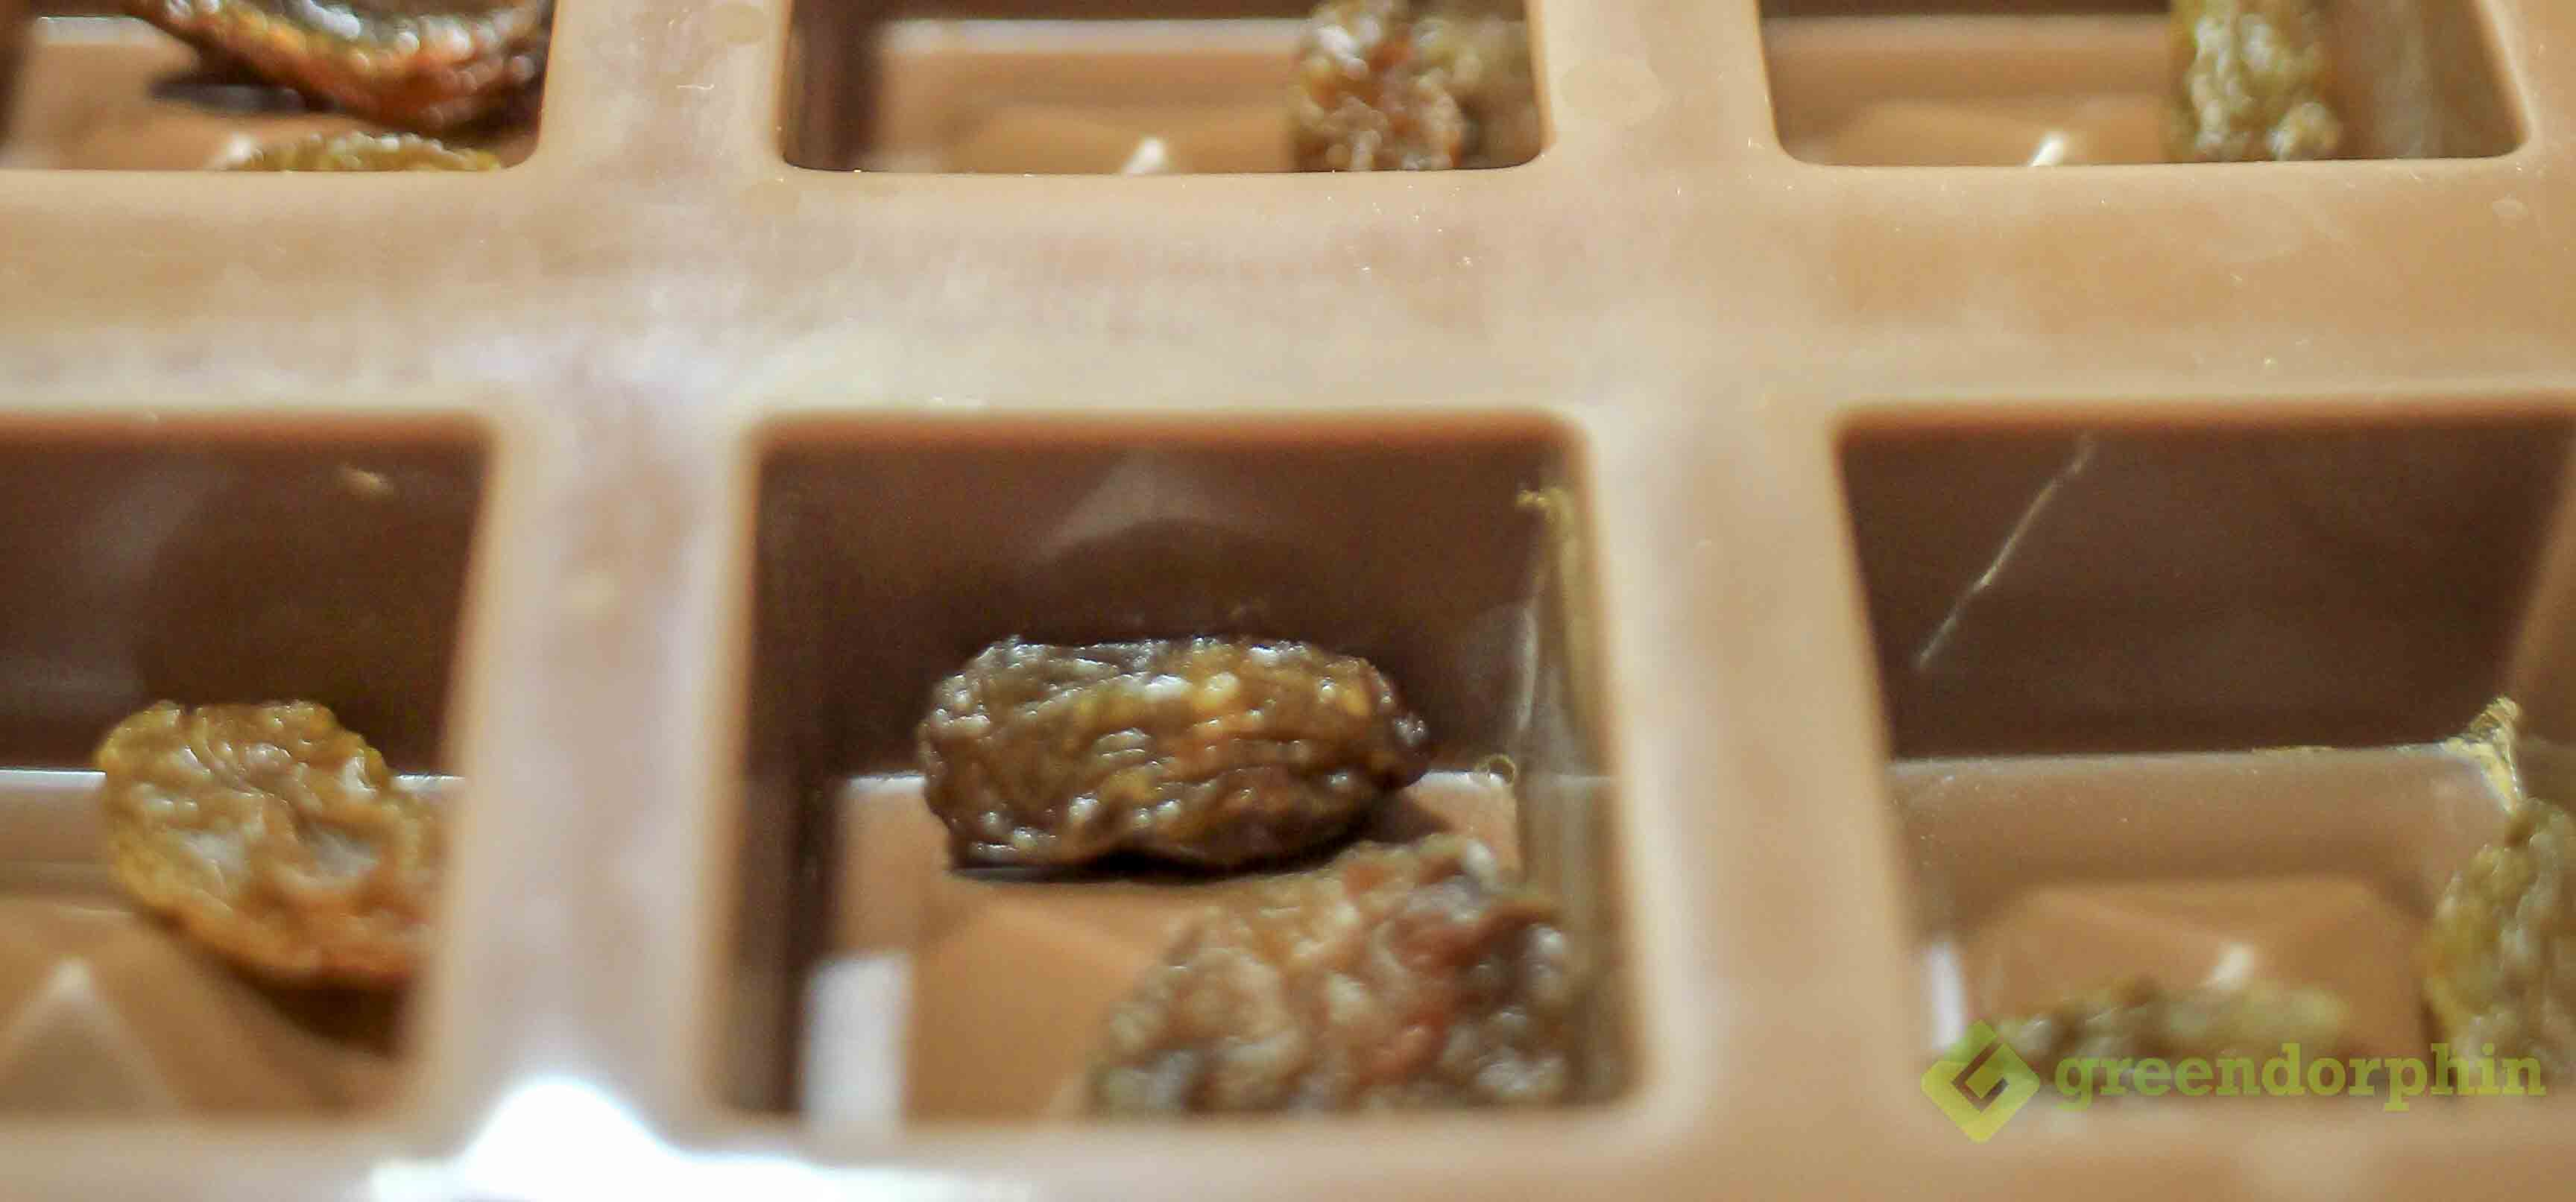 Mould with raisens for Edibles